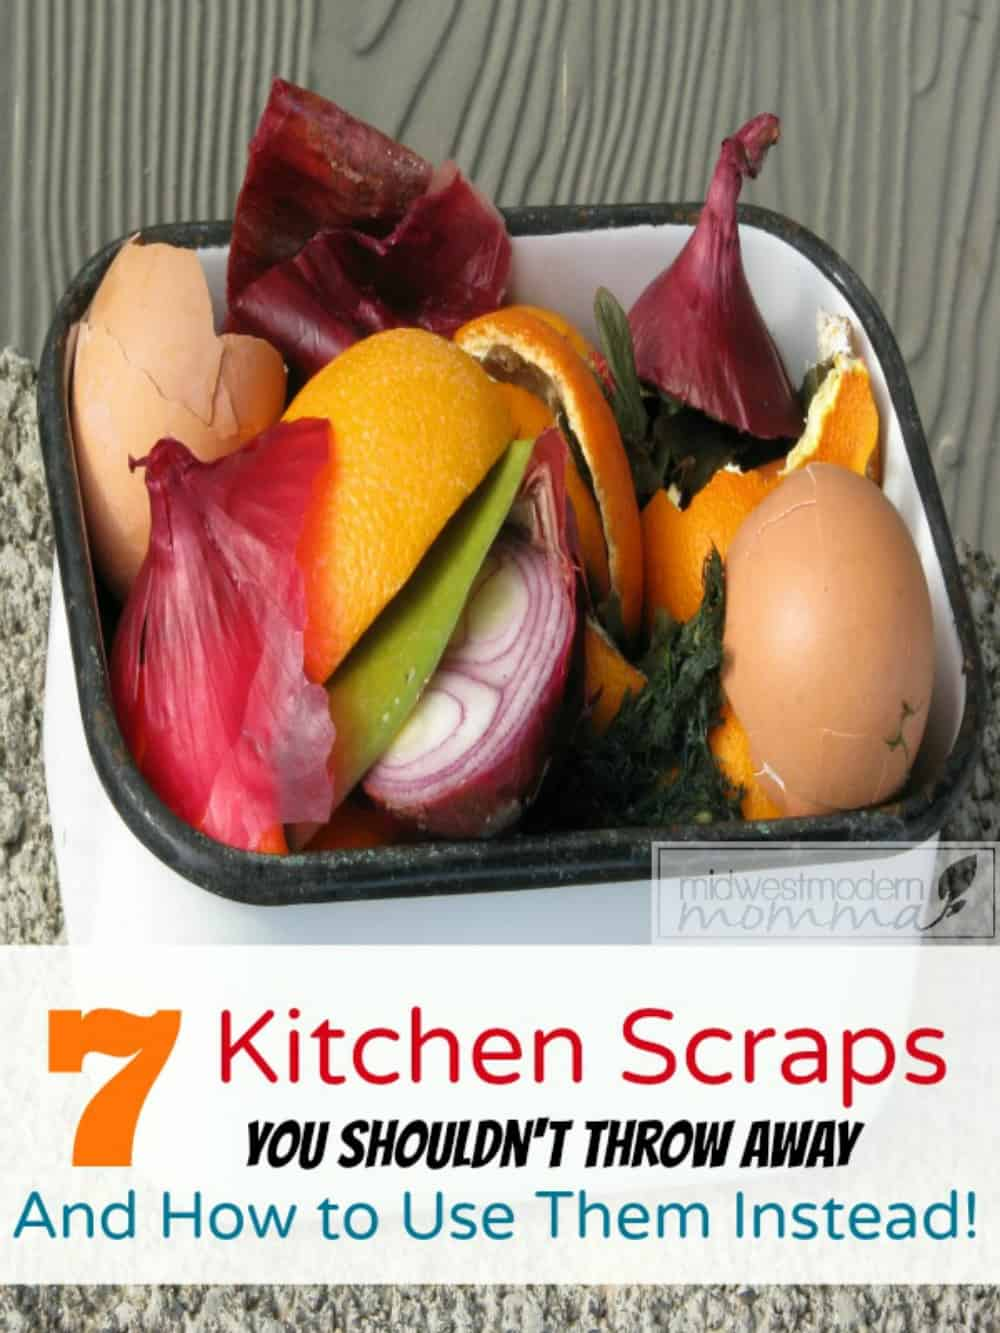 Foods Scraps may always seem like trash, but there are actually 7 Kitchen Food Scraps You Should Never Throw Away! Check out #4! It shocked me!